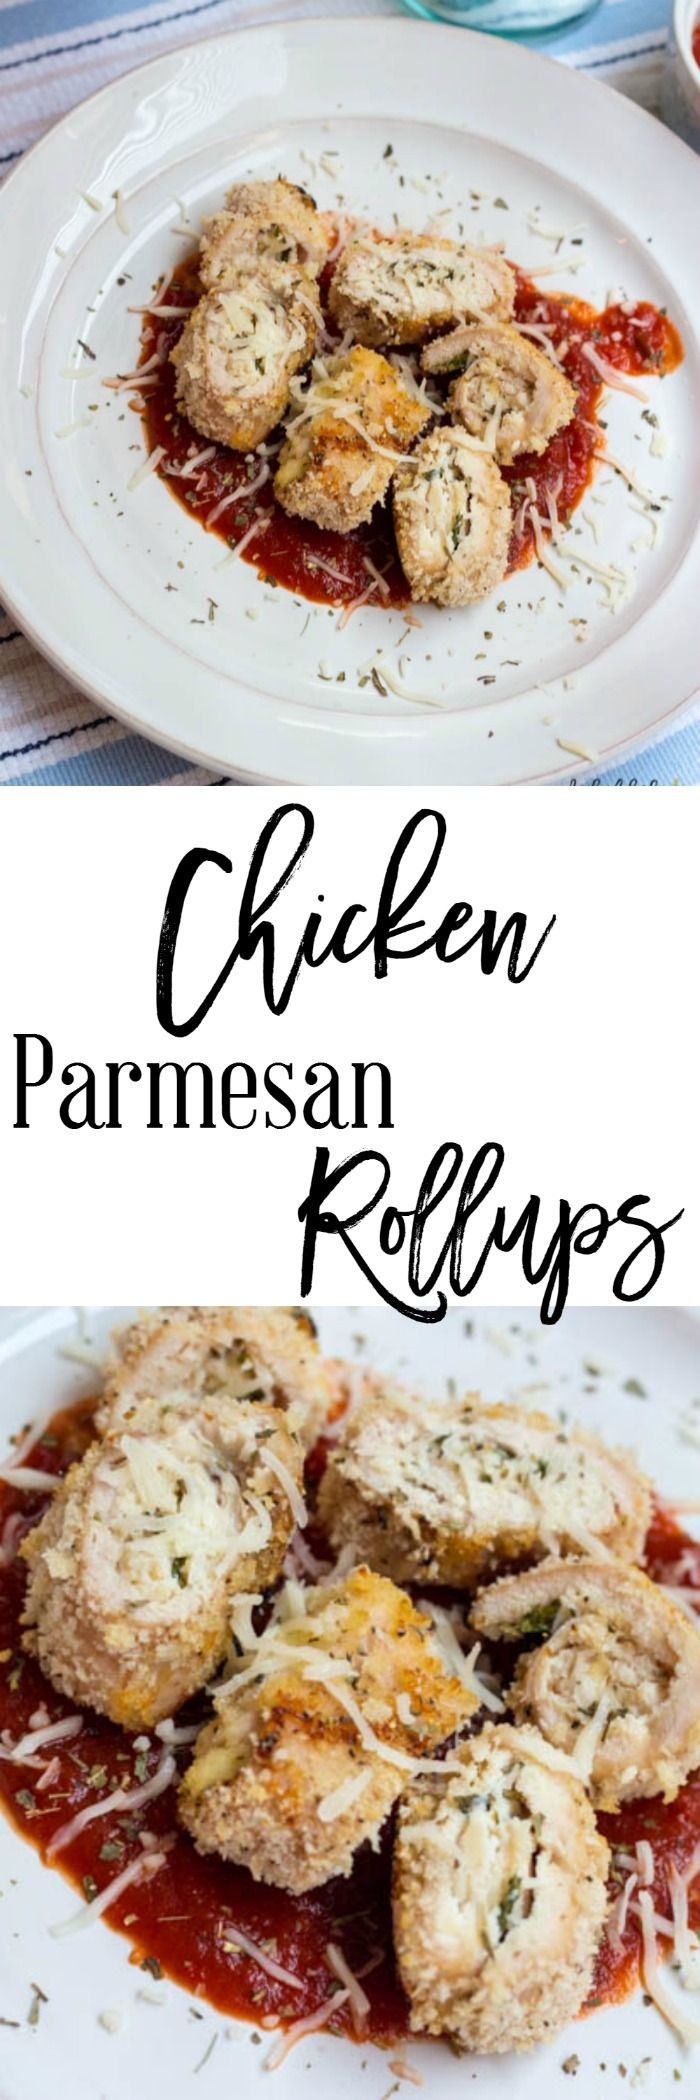 Chicken Parmesan Rollups - A twist on an Italian classic meal. And these are healthy too. Only 7 SmartPoints per serving on Weight Watchers